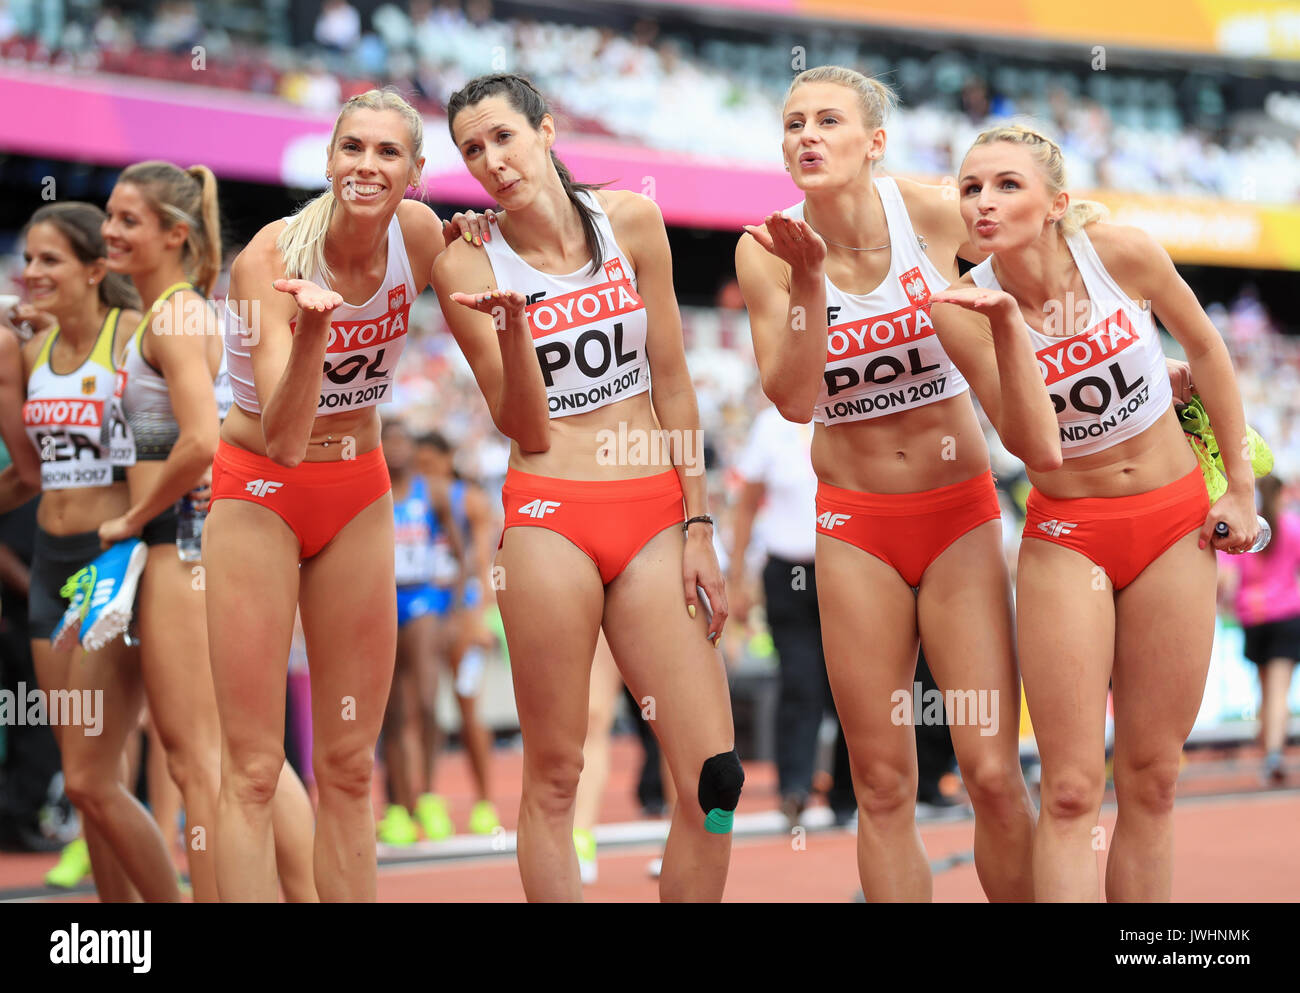 The Polish 4x400m Women's Relay Team Iga Baumgart, Martyna Dabrowska, Patrycja Wyciszkiewicz and Malgorzata Holub blow kisses to the crowd during day nine of the 2017 IAAF World Championships at the London Stadium. PRESS ASSOCIATION Photo. Picture date: Saturday August 12, 2017. See PA story ATHLETICS World. Photo credit should read: Adam Davy/PA Wire. RESTRICTIONS: Editorial use only. No transmission of sound or moving images and no video simulation. - Stock Image